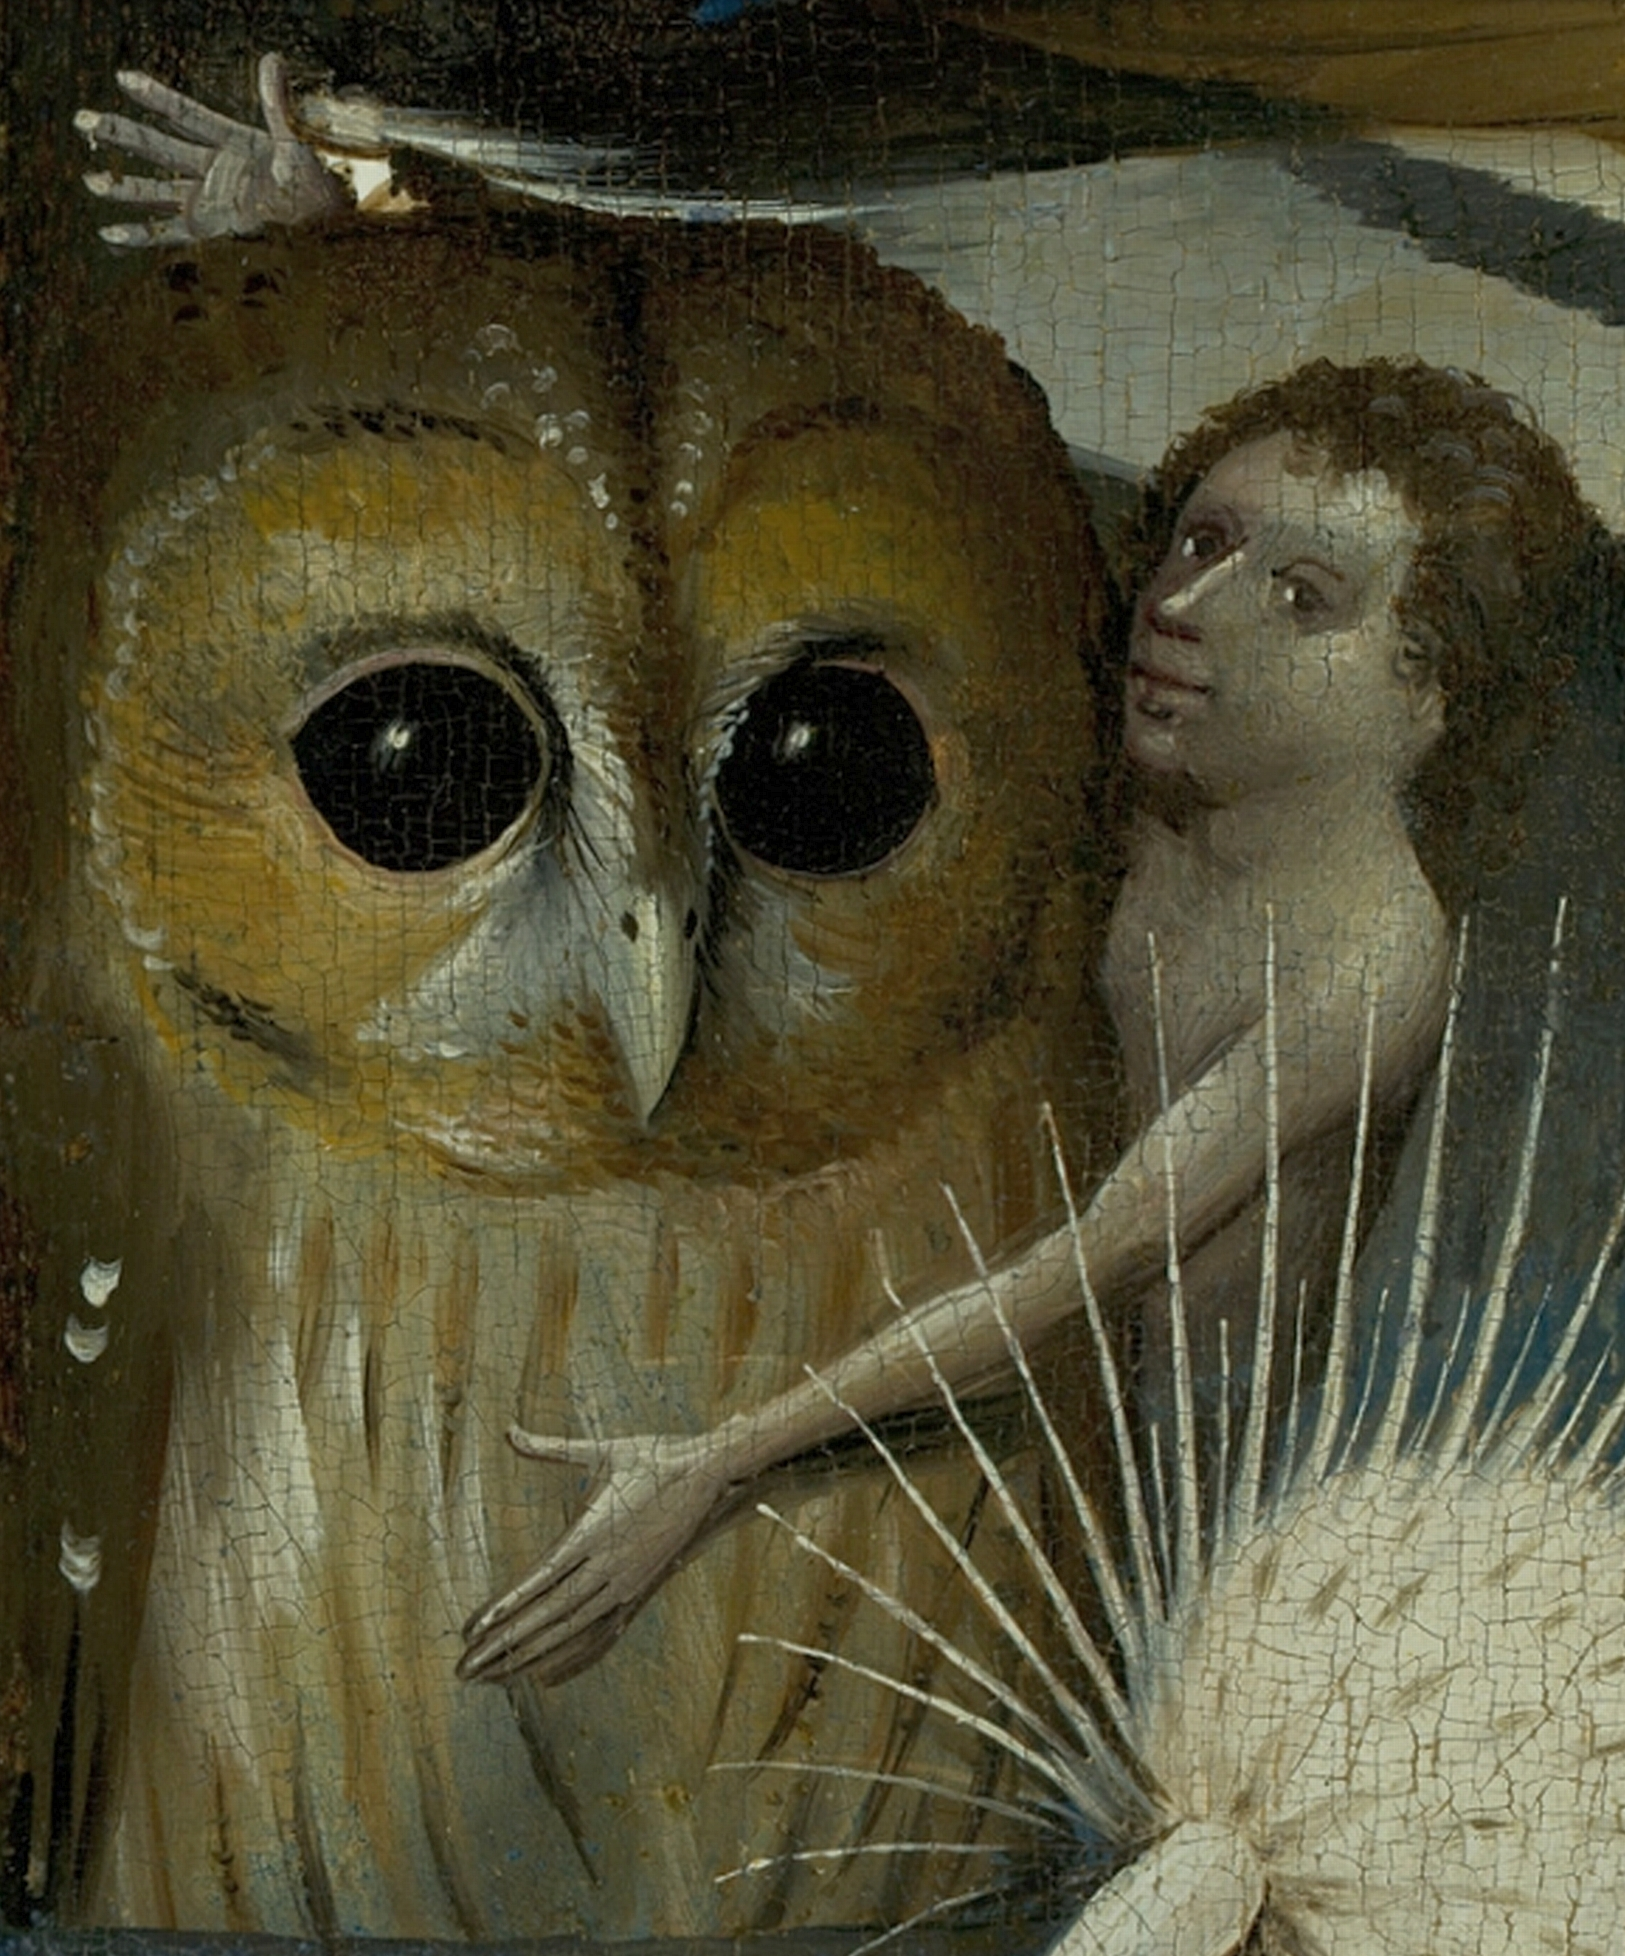 Human embracing tawny owl, detail from Bosch's Garden of earthly delights